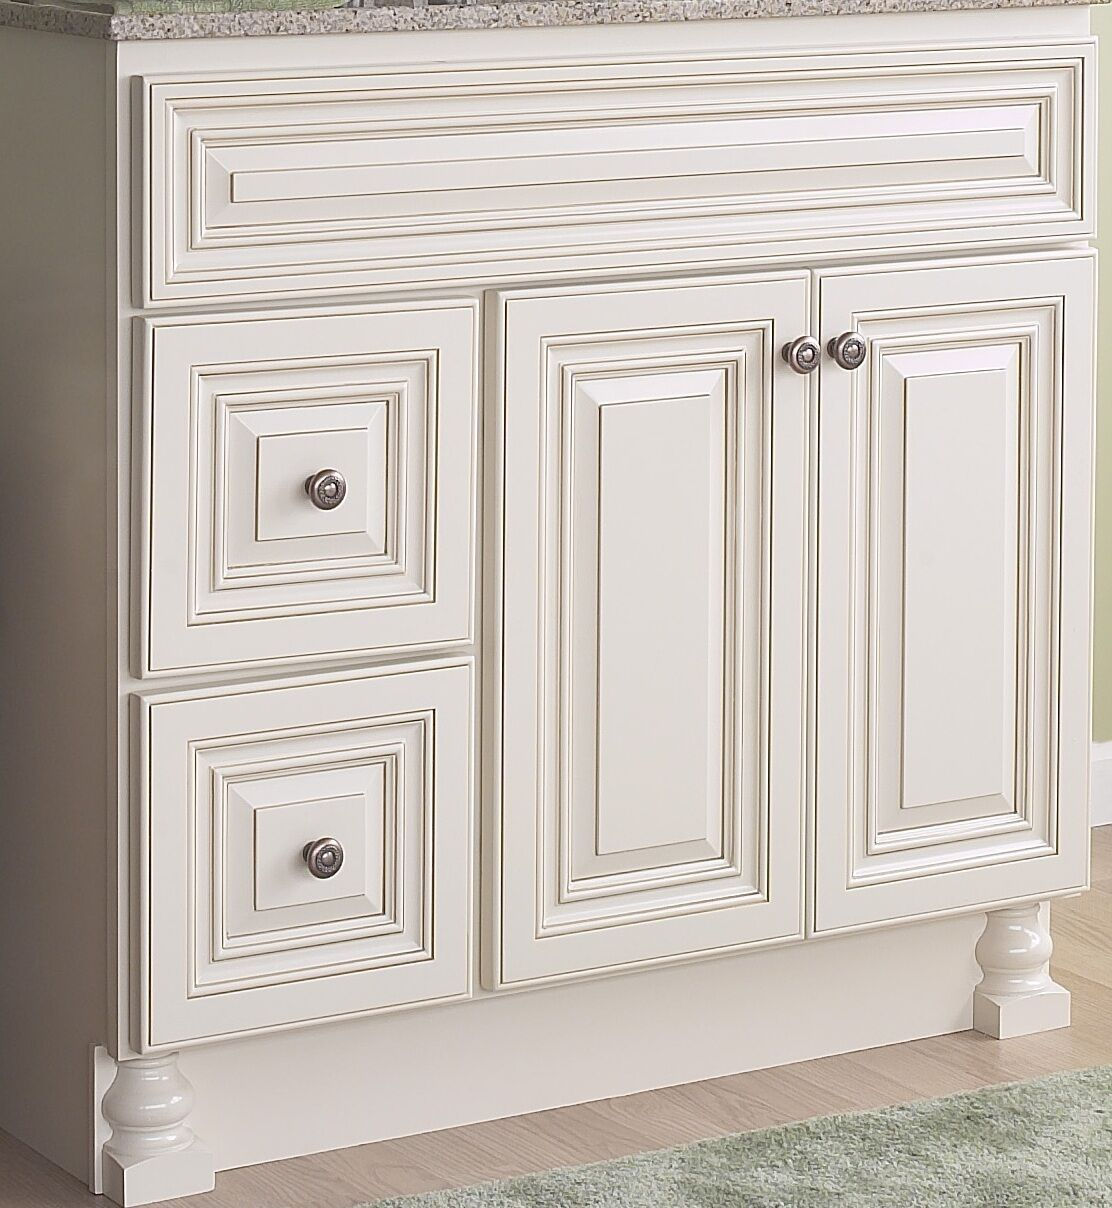 jsi wheaton bathroom vanity base solid wood 36 cream 2 doors 2 lh drawers ebay. Black Bedroom Furniture Sets. Home Design Ideas